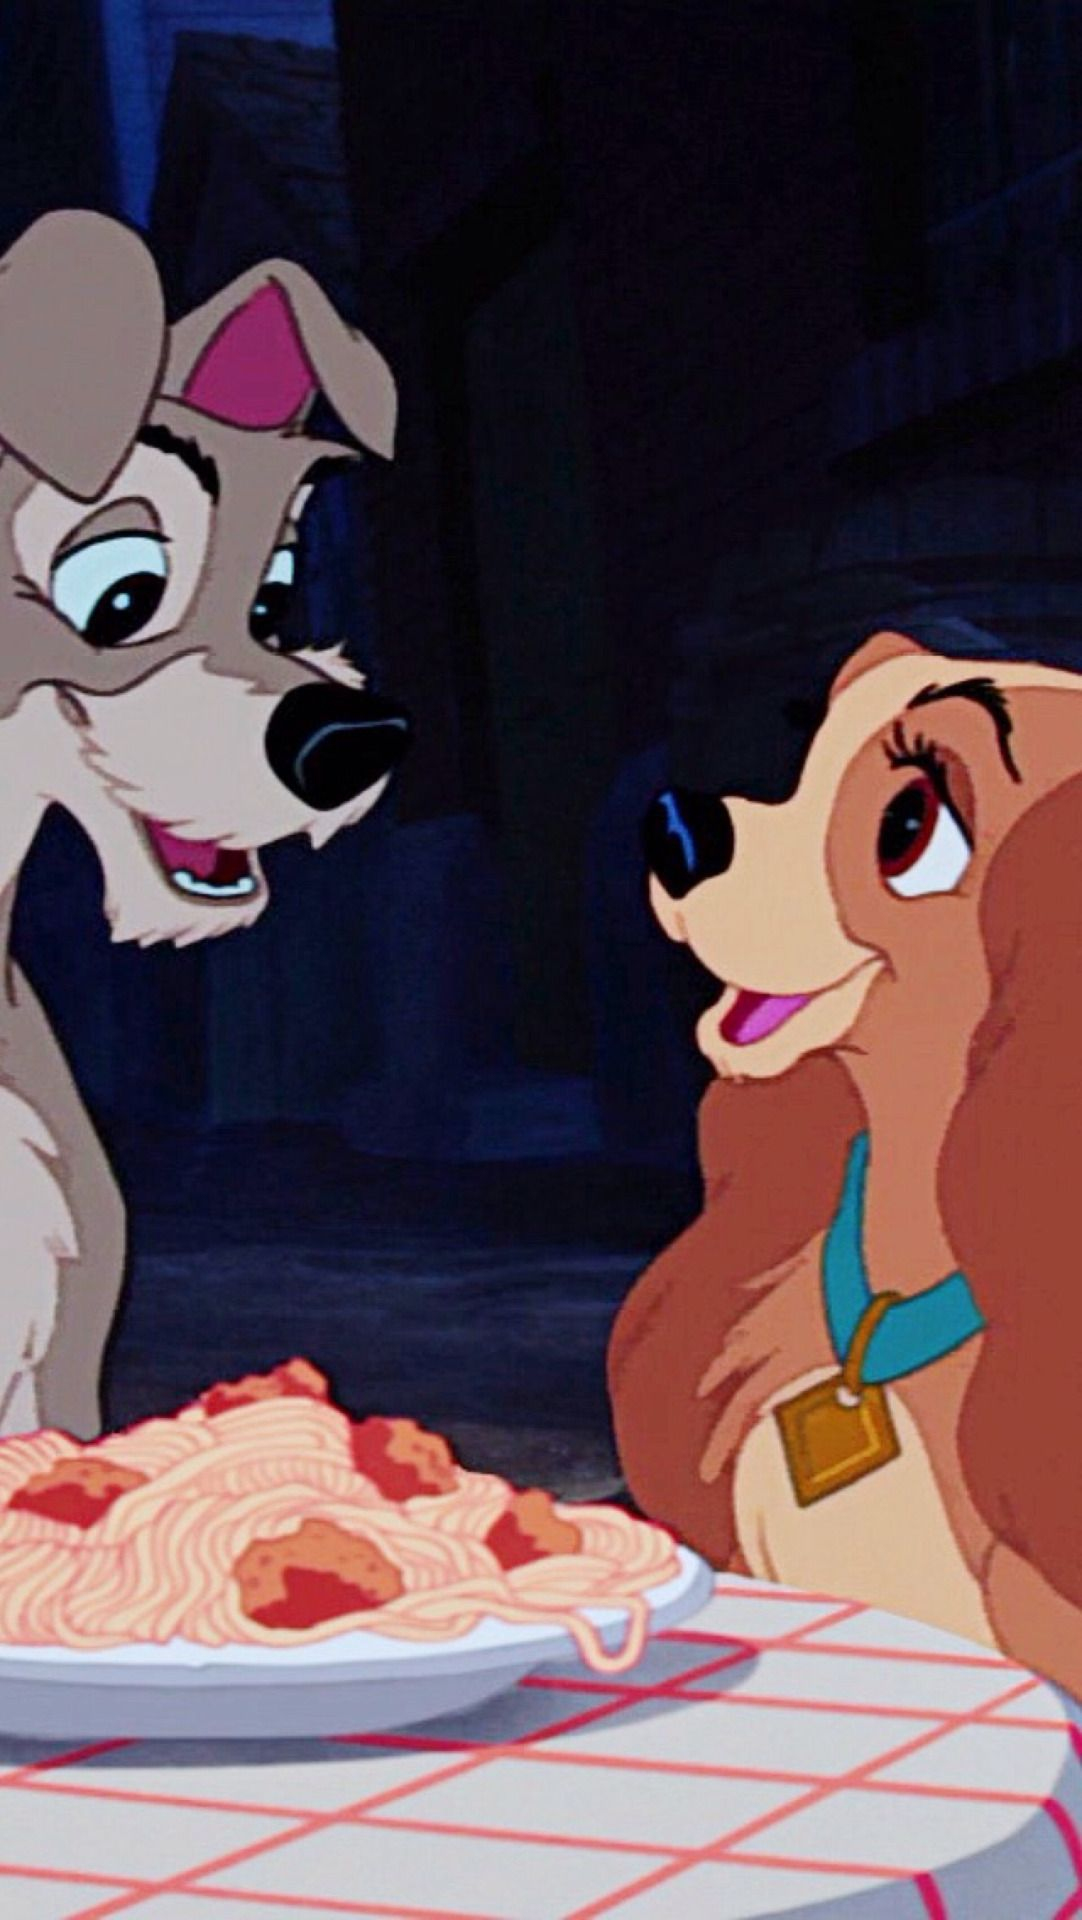 Lady And The Tramp Disney Ladyandthetramp わんわん物語